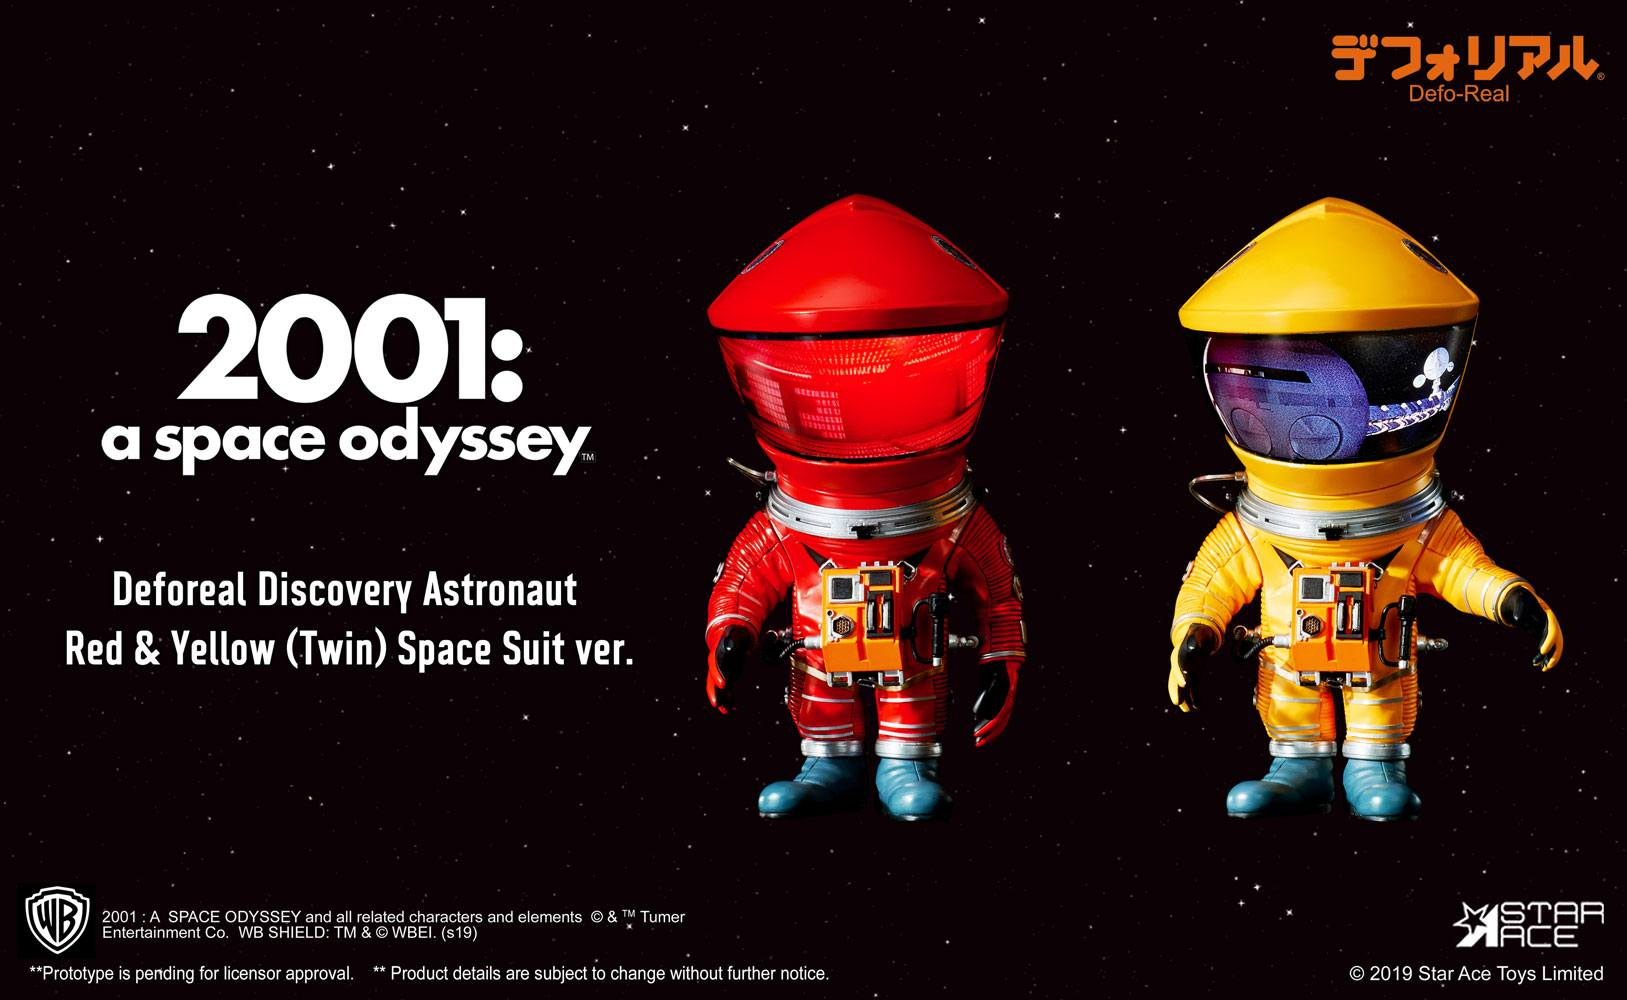 2001: A Space Odyssey Artist Defo-Real Series Soft Vinyl Figures DF Astronaut Red & Yellow Ver.